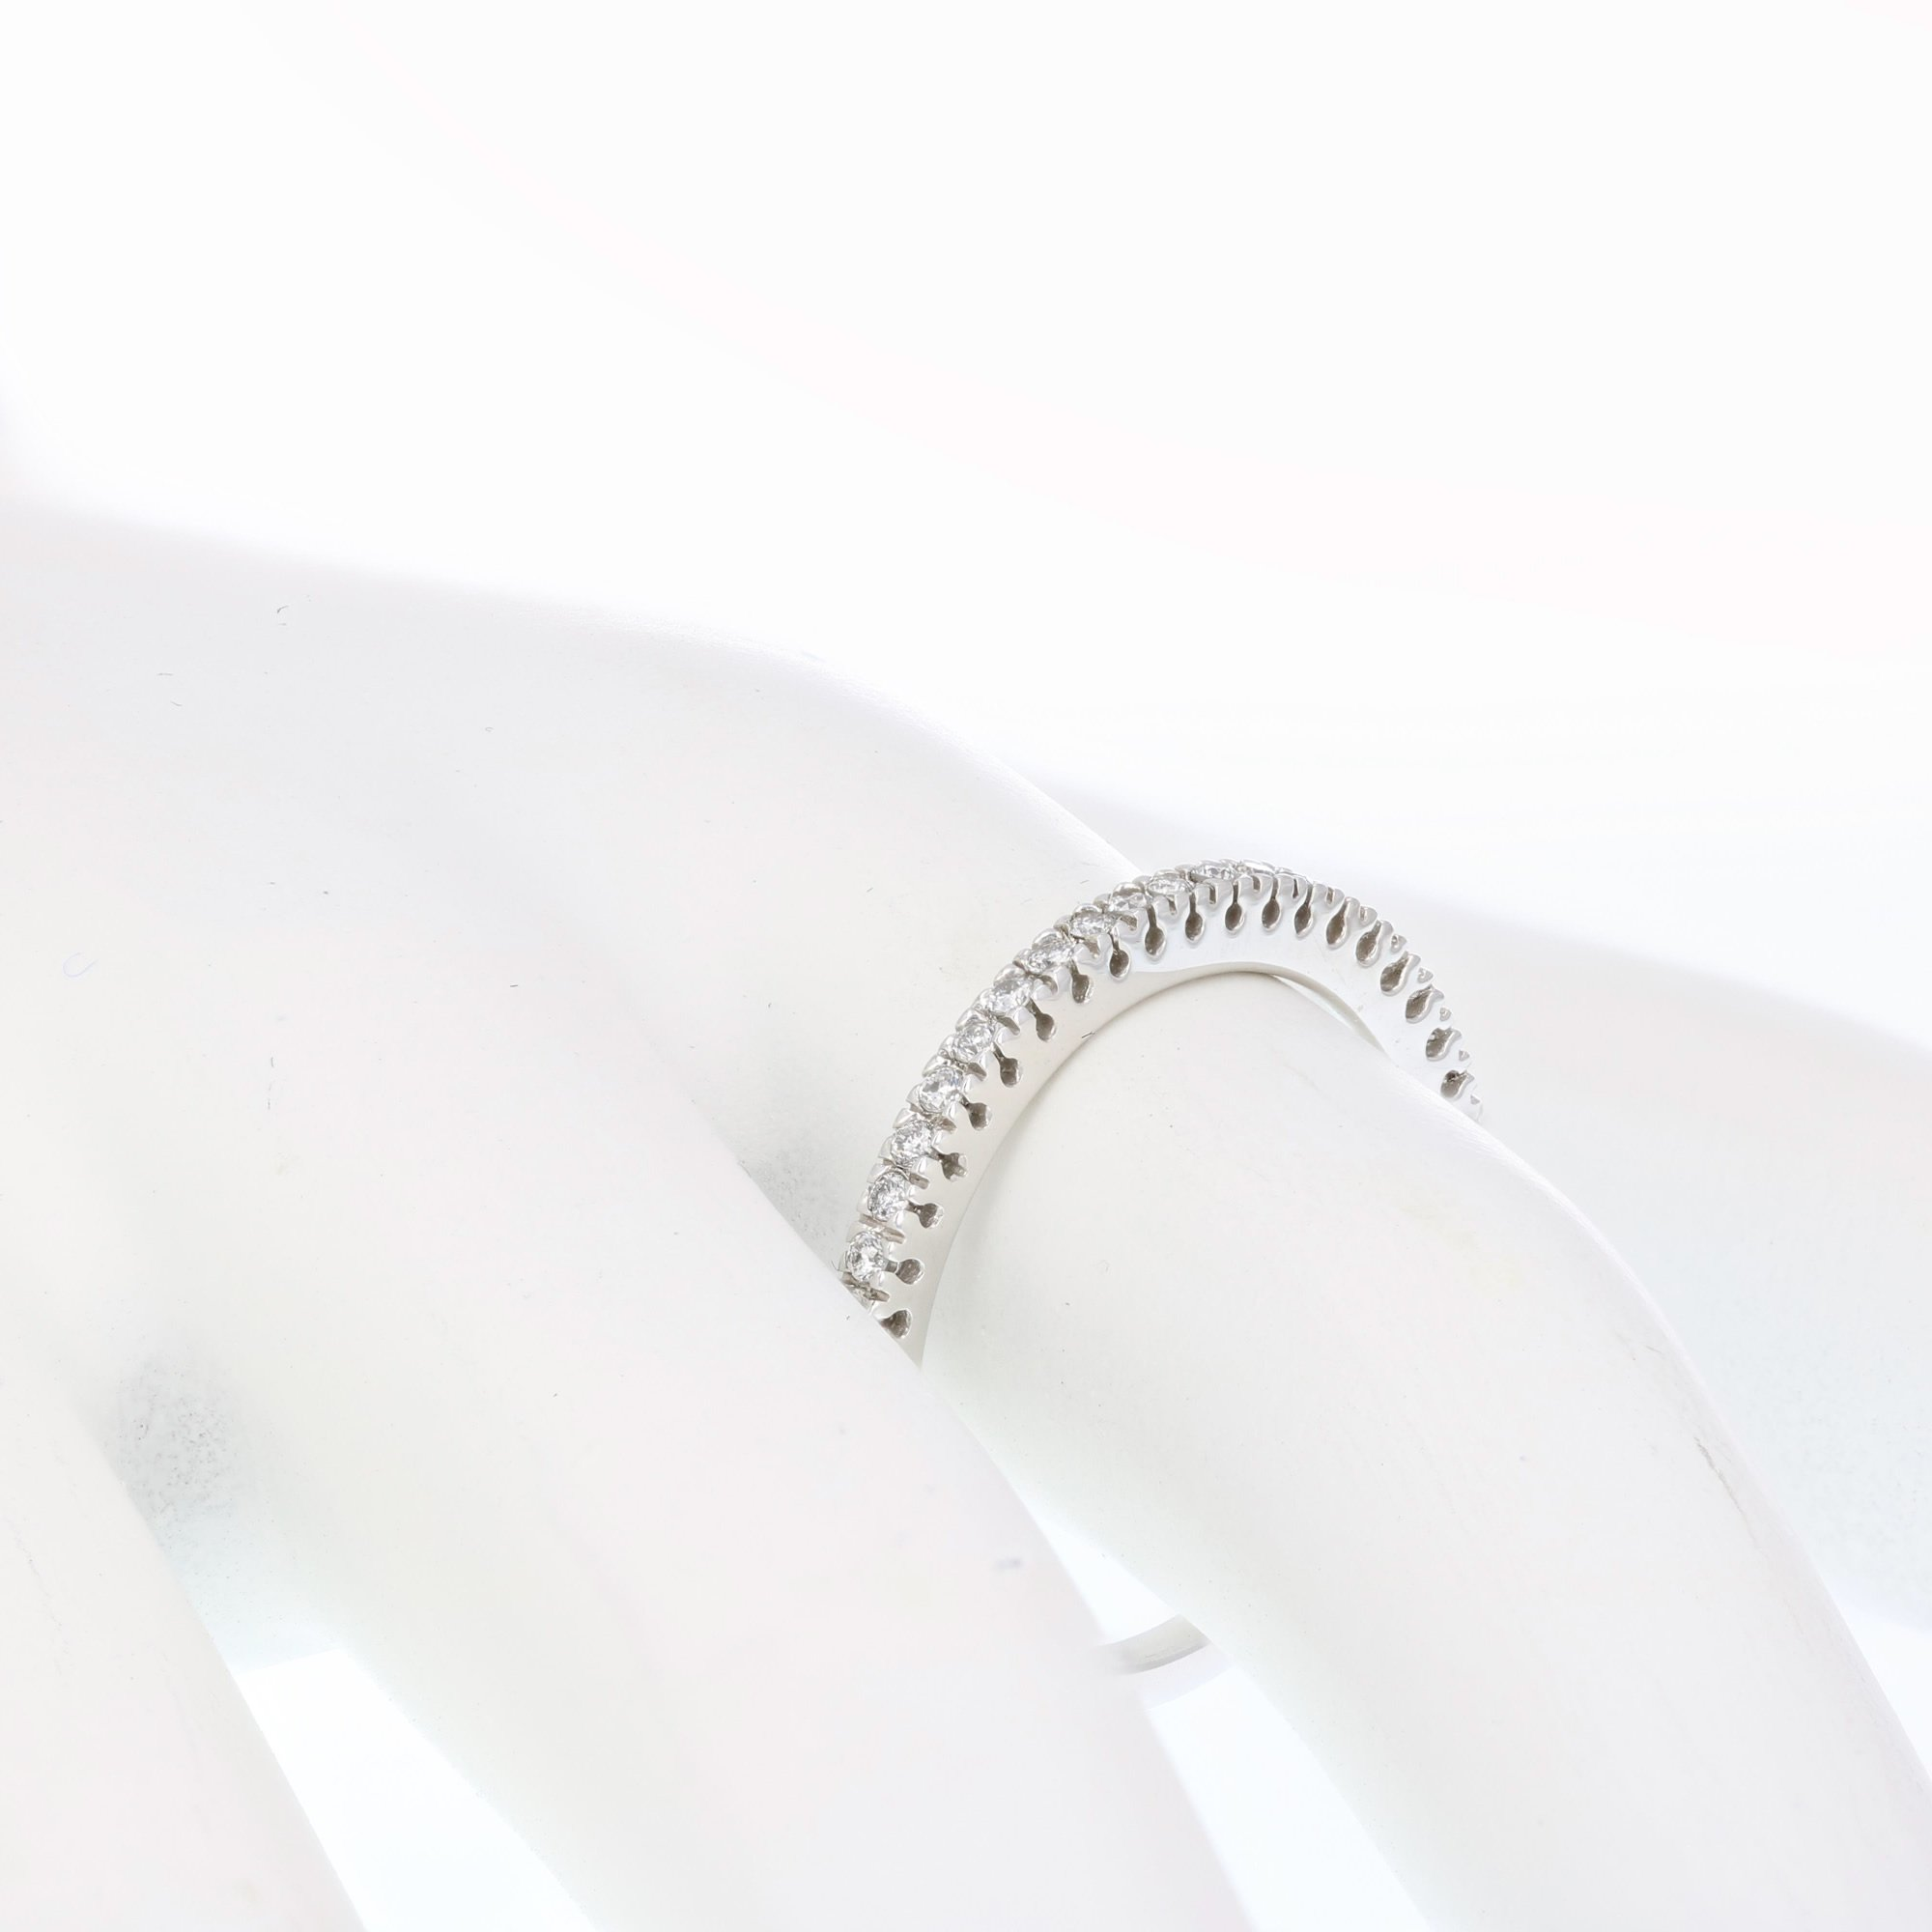 1/6 ctw Pave Diamond Wedding Band in 10K White Gold In Size 5 by Vir Jewels (Image #3)